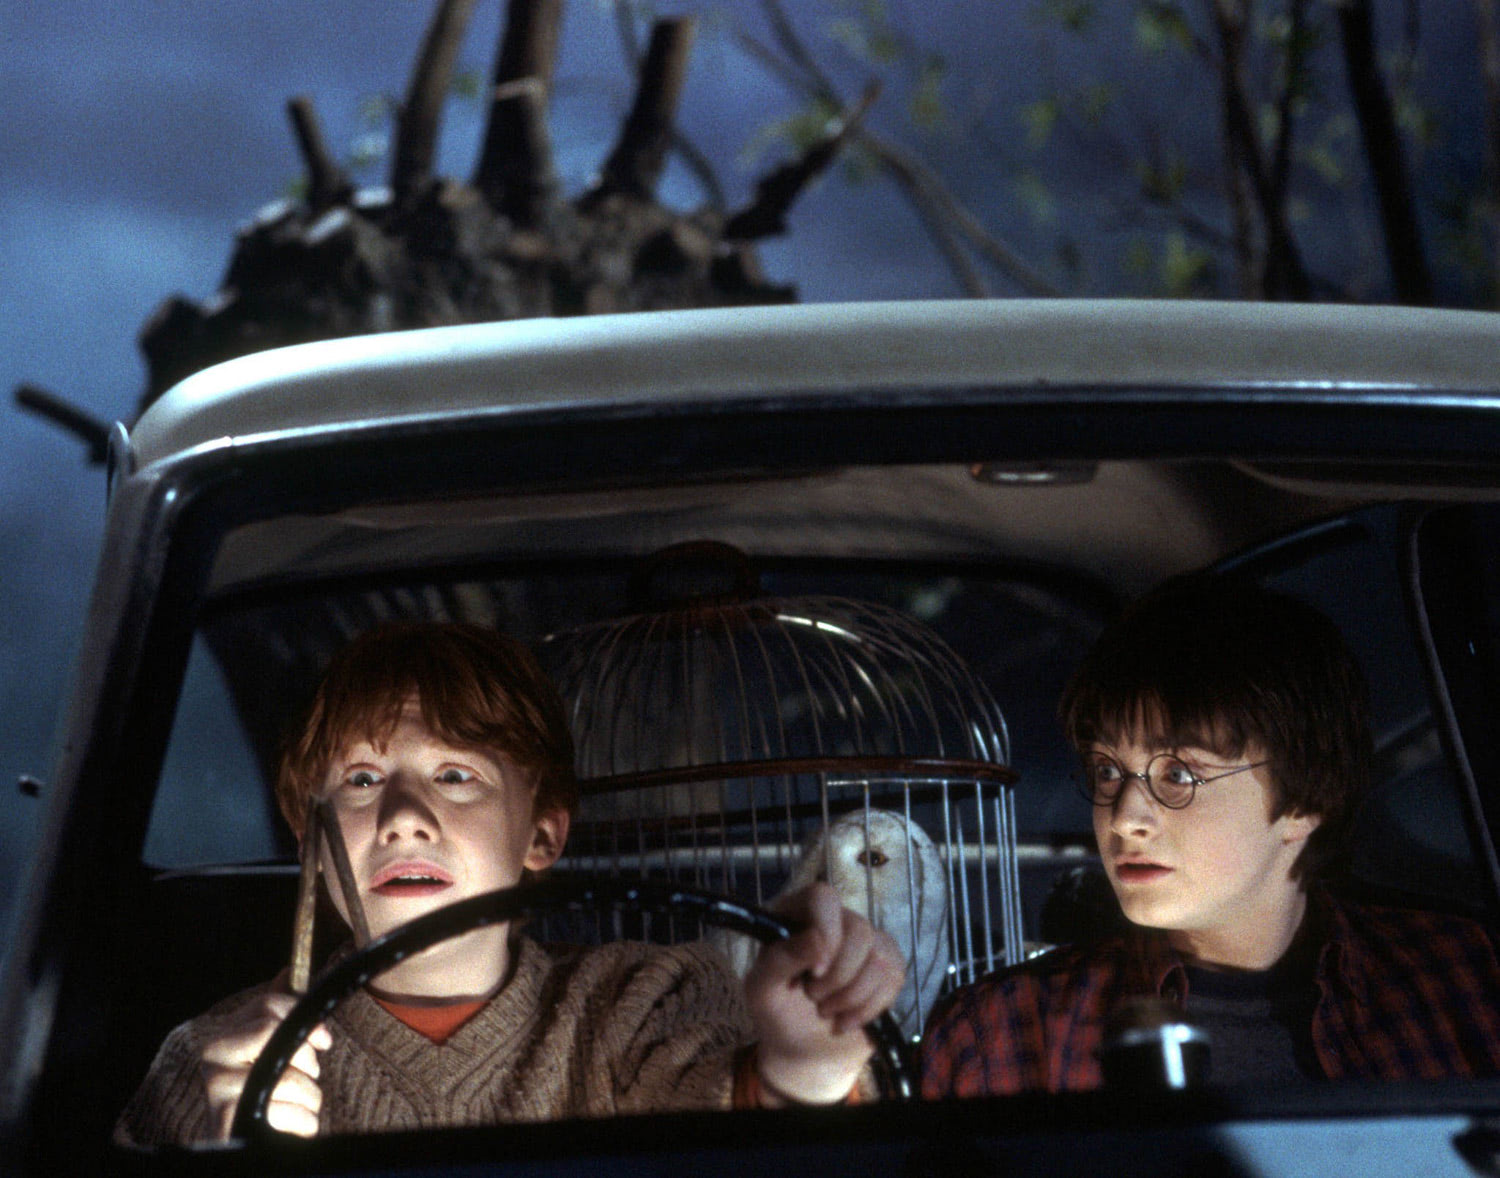 Harry and Ron crash into the Whomping Willow